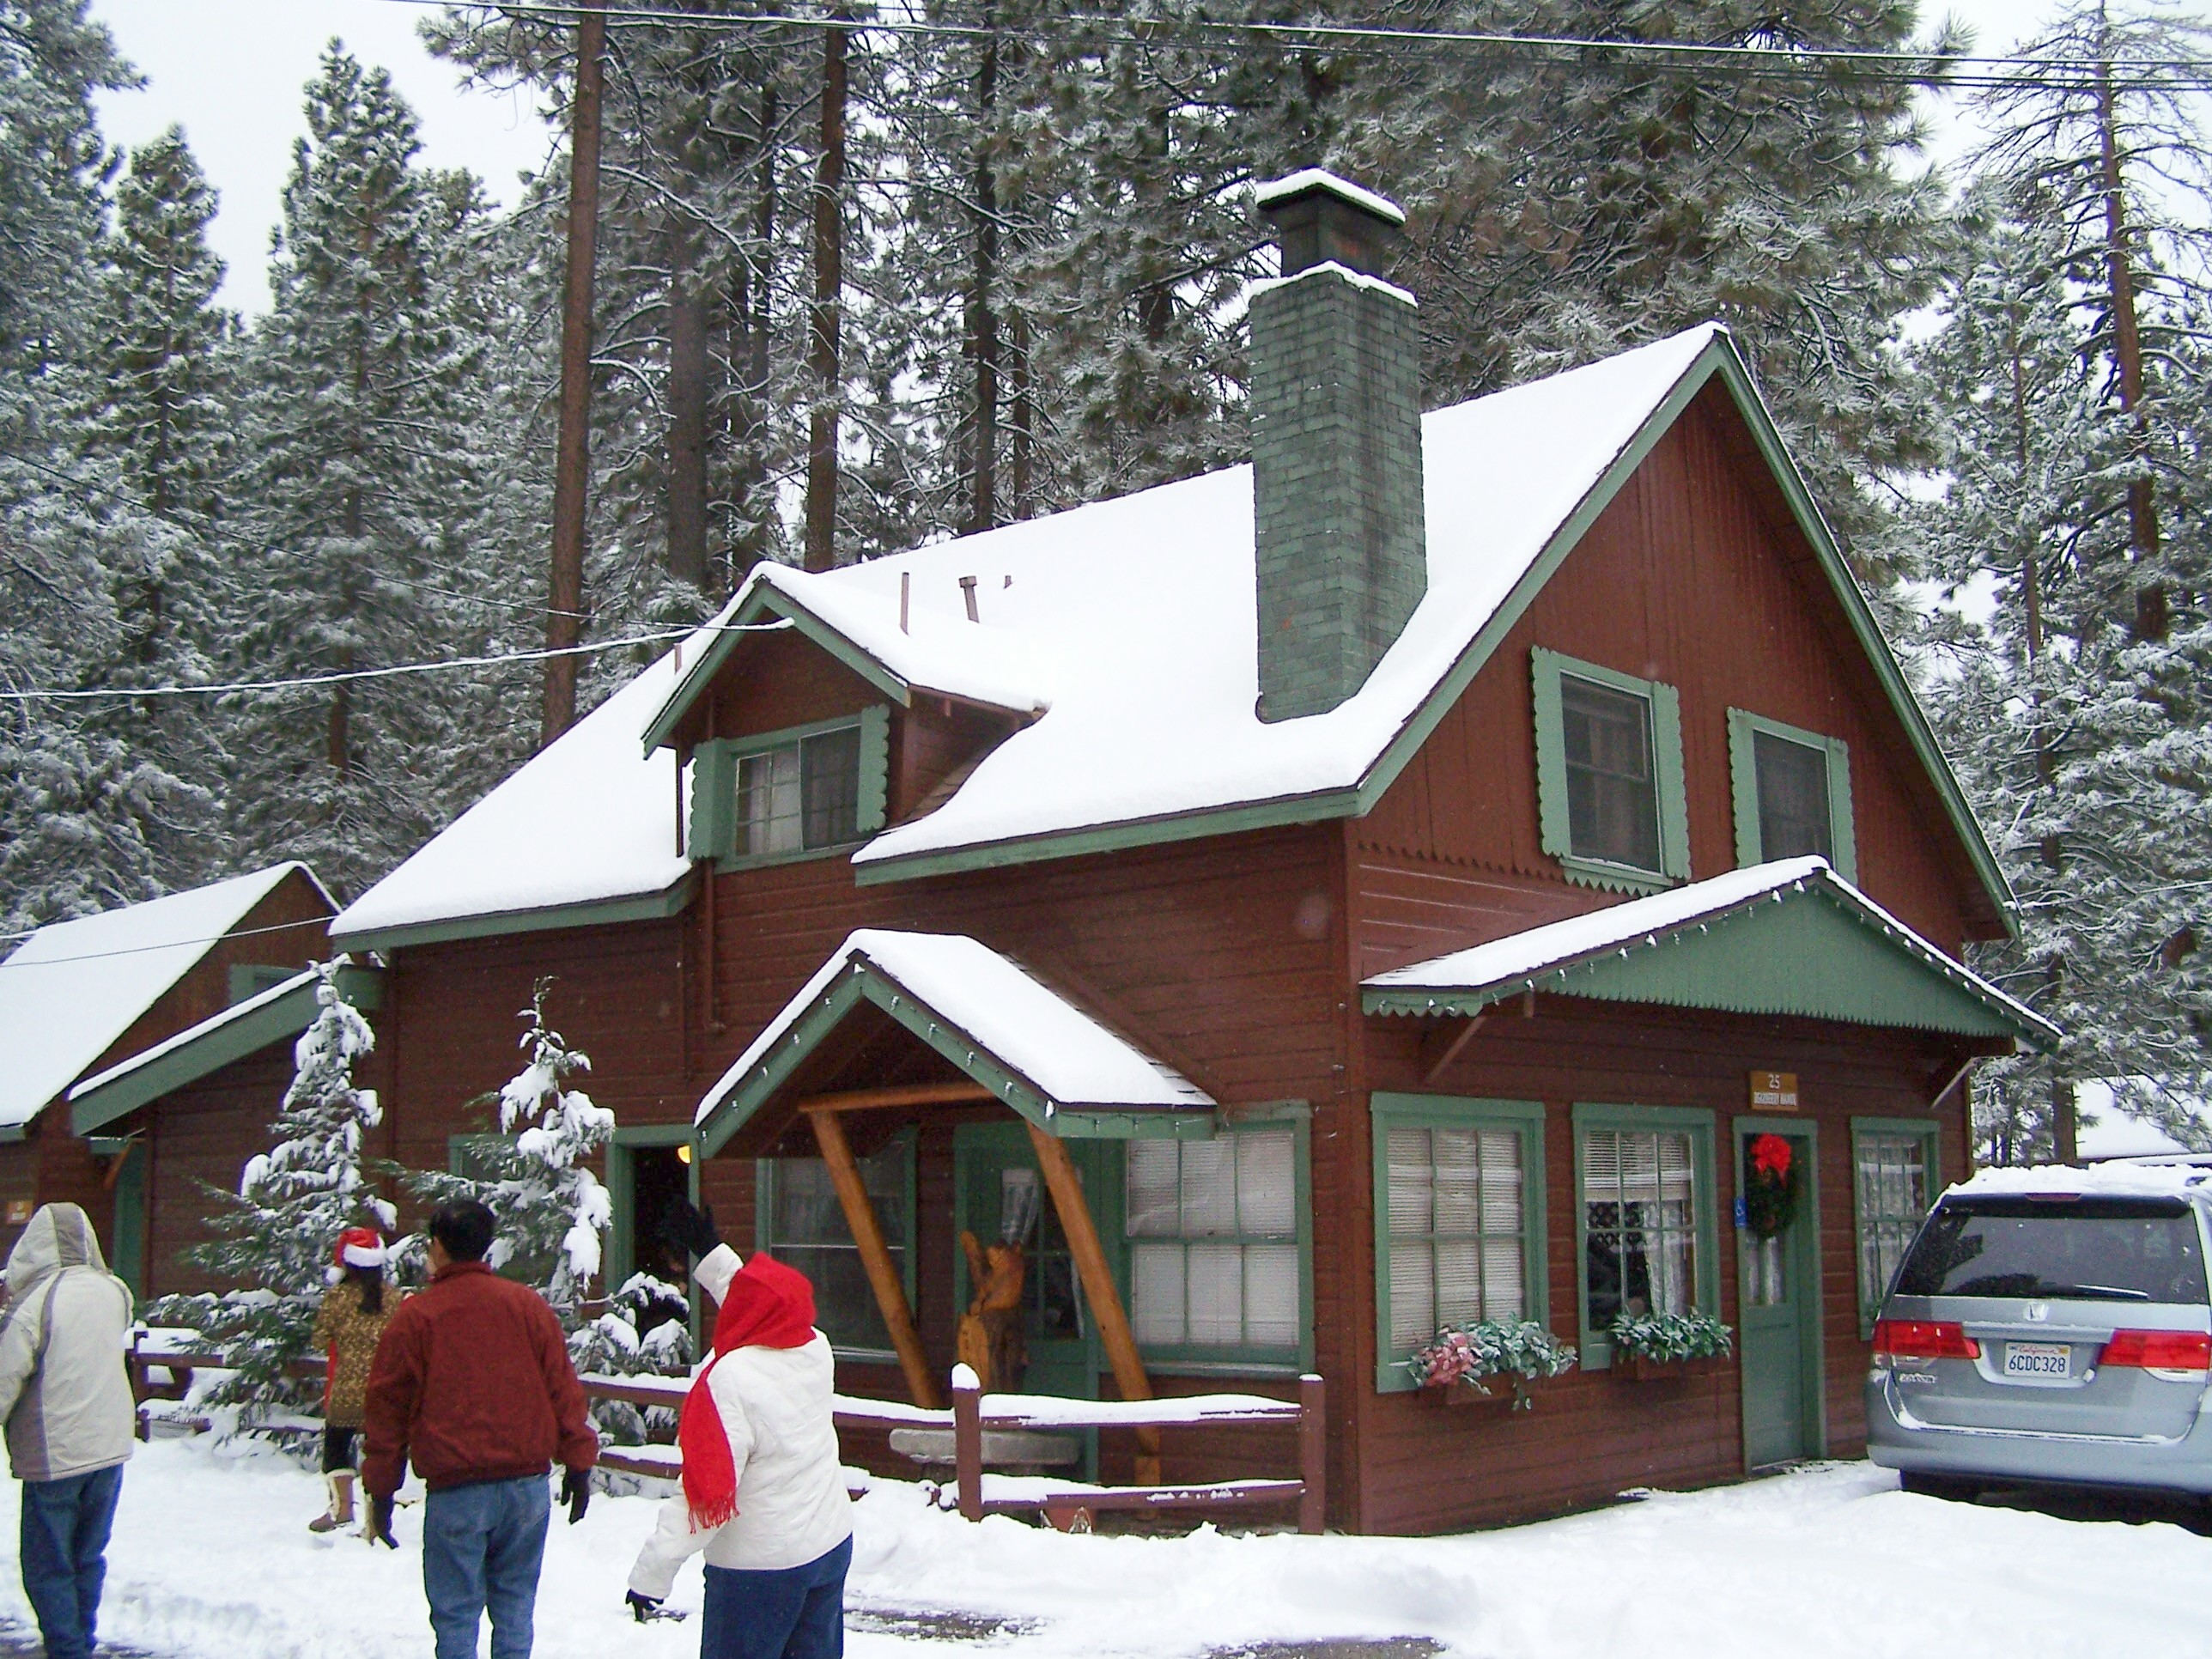 Golden Bear Cottages - AAA approved cabins and family vacation rentals reviews | 39367 Big Bear Boulevard - Big Bear Lake CA